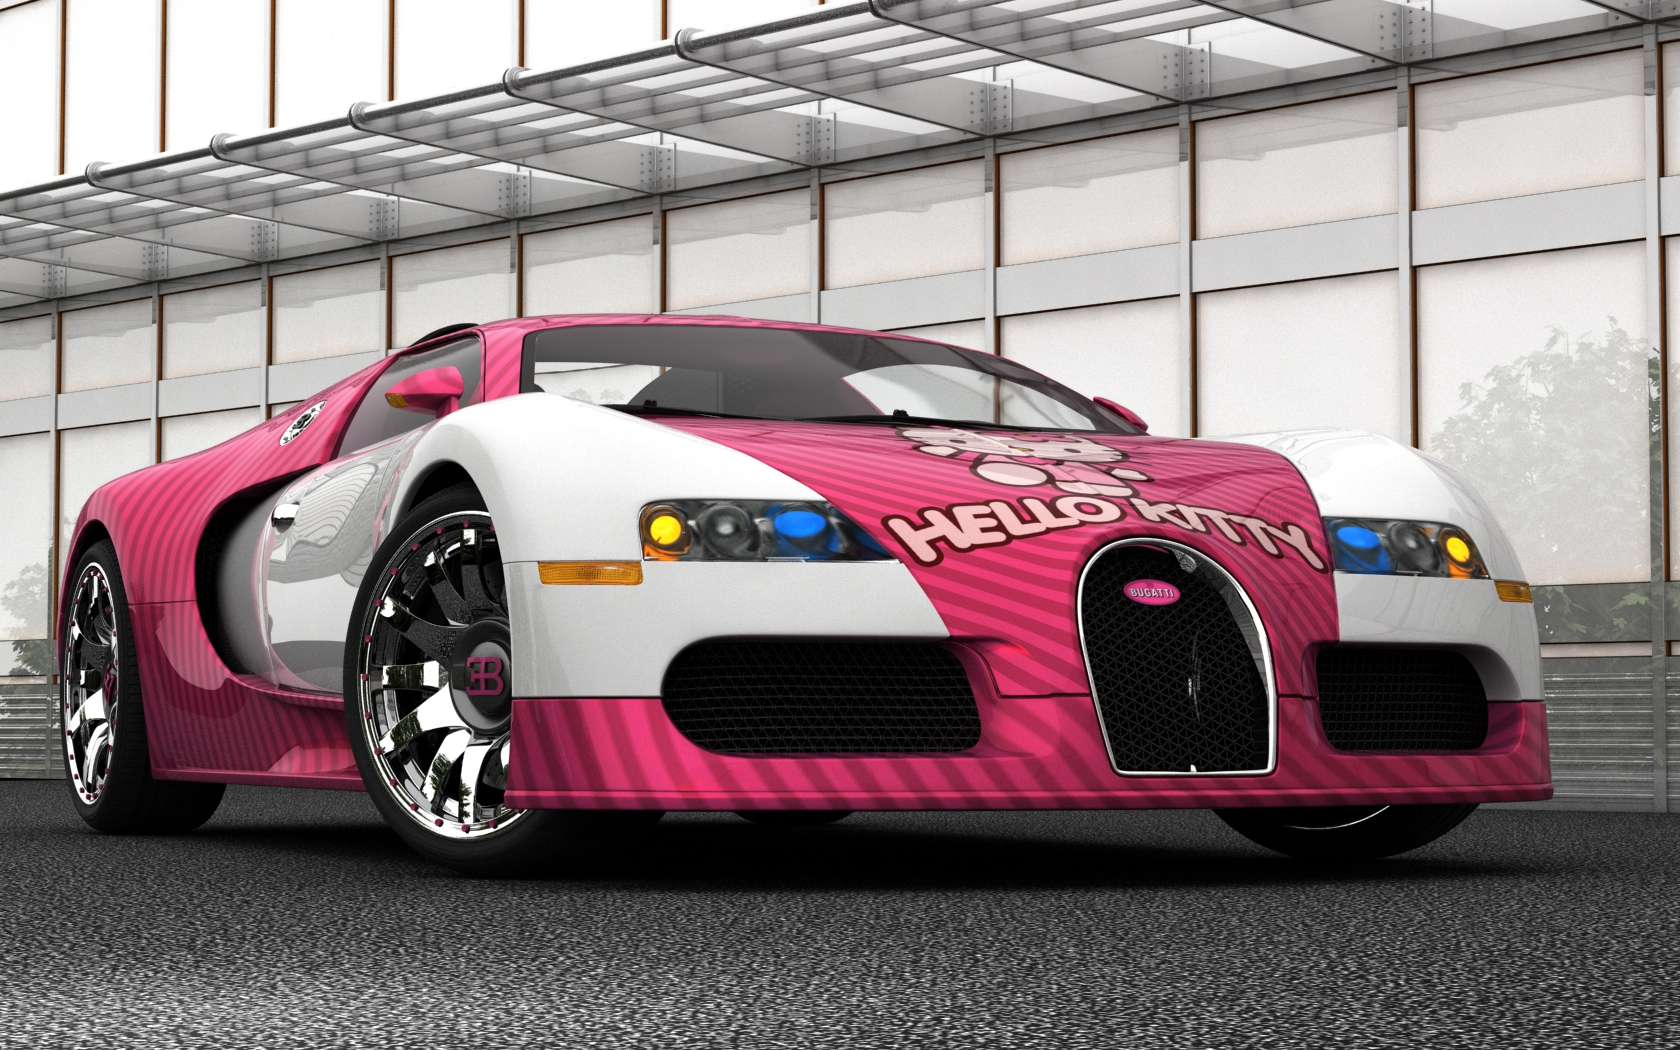 Beautiful Wallpaper Hello Kitty Car - bugatti_veyron___hello_kitty_by_dracu_teufel666-d5ons7k  Graphic_883946.jpg